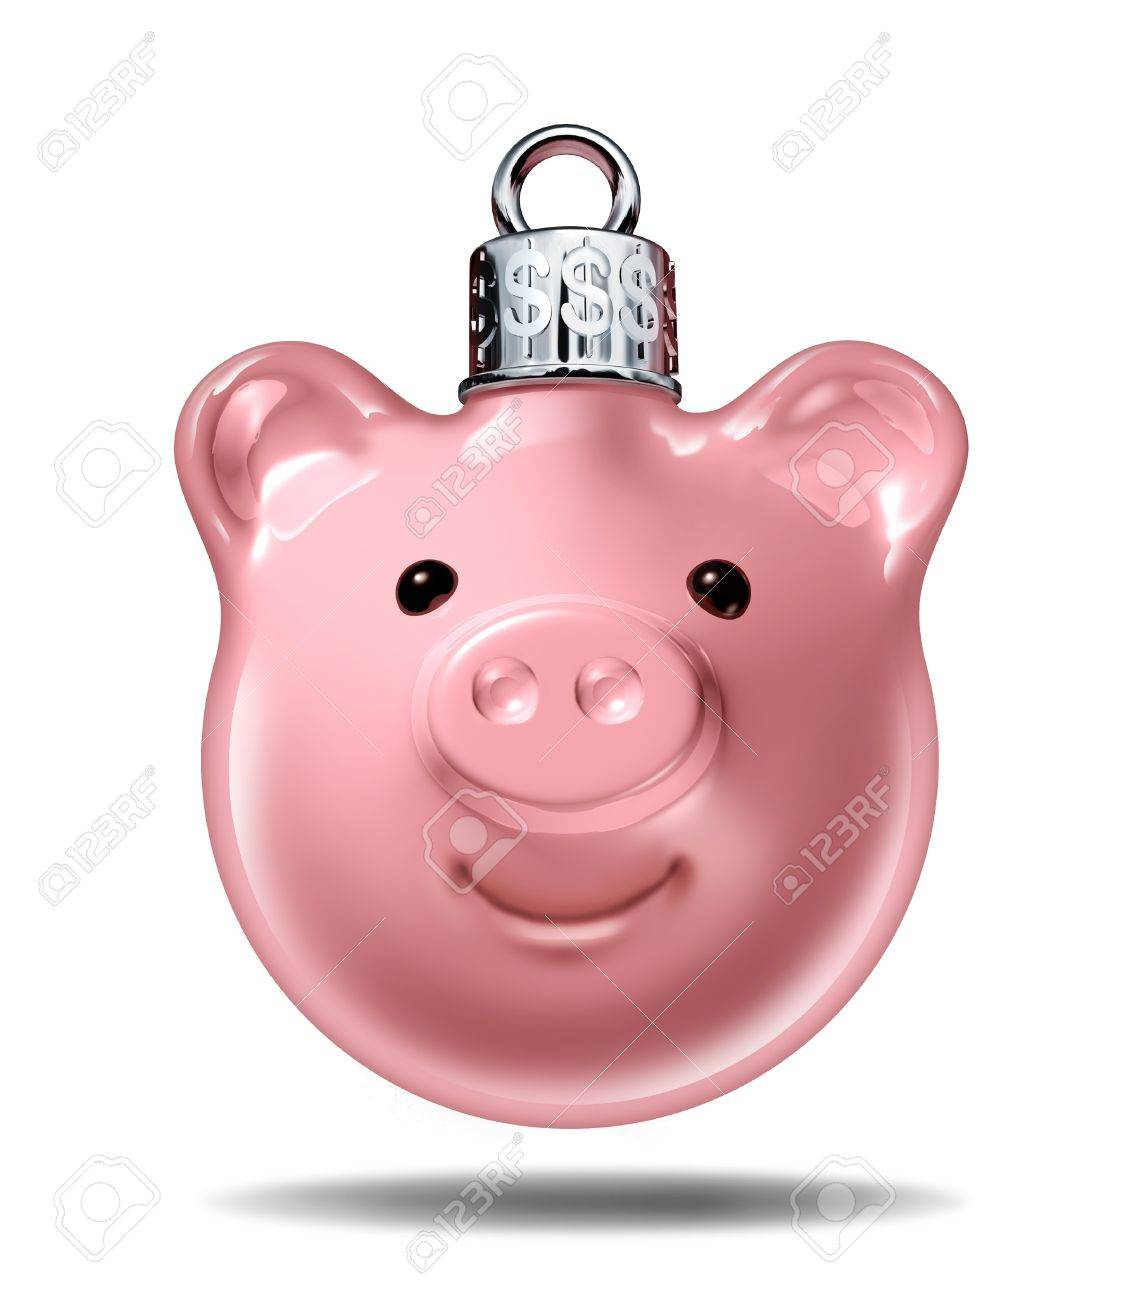 Christmas budget and holiday savings specials symbol with a piggy bank in the shape of a decorative  pine tree ball with silver top with dollar signs embossed as an icon of spending for gifts and prices in the gift giving season Stock Photo - 15418054